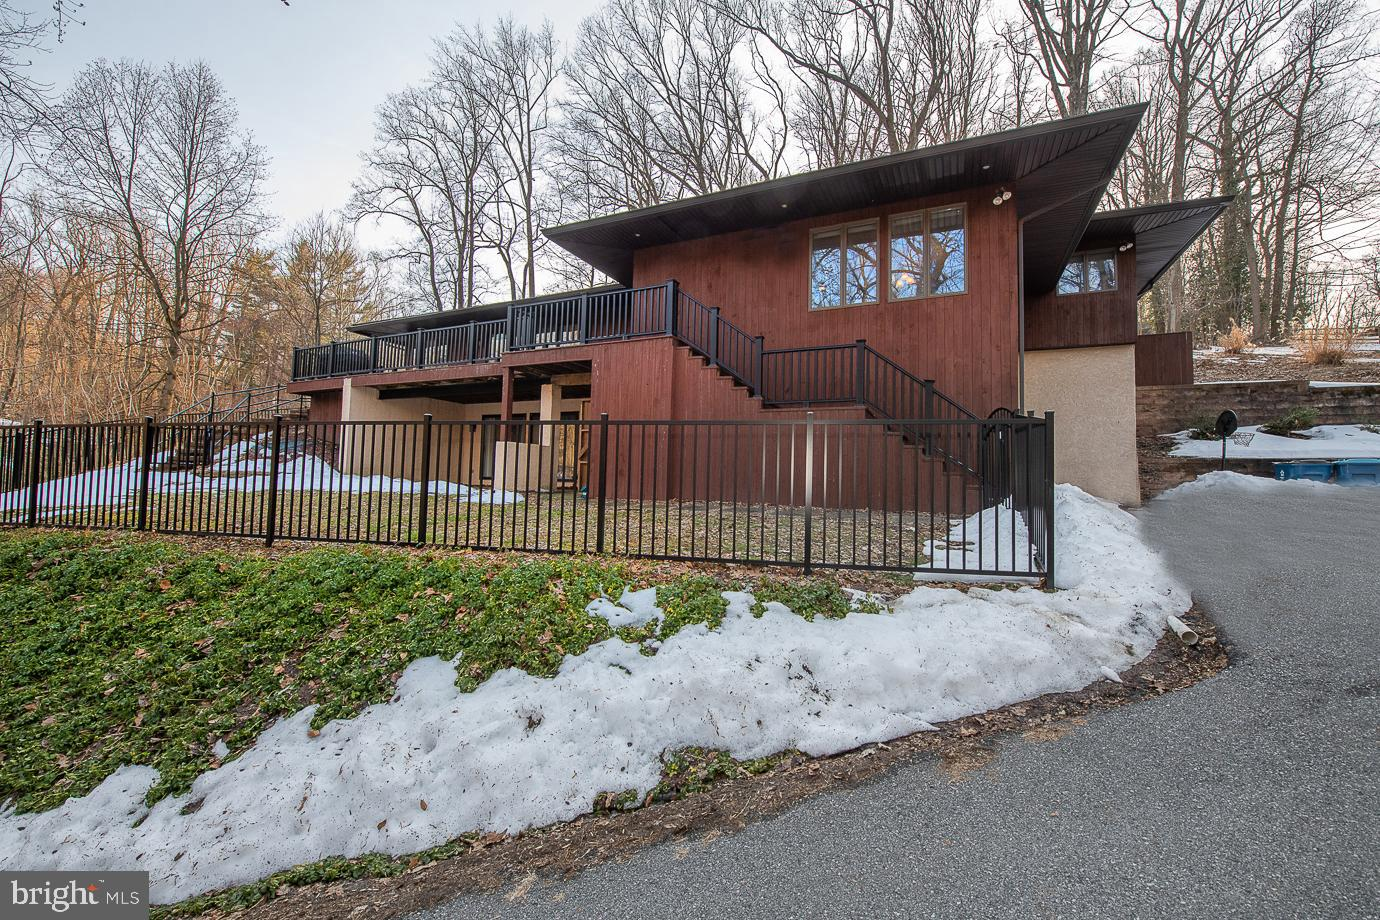 This bi-level contemporary in Berwyn is a unique find and is beautiful inside and out! As you approach this home from the long, private driveway, you are greeted by clean architectural lines and warm tones of the wood-stained siding. A large foyer welcomes you home with hardwood floors and beautiful tile inserts. The hardwoods flow seamlessly throughout the first floor starting with the open kitchen and dining area that is surrounded by large windows where you can take in the sights of your beautiful wooded yard for a secluded escape. The kitchen is an entertainer's dream with beautiful white cabinets for lots of storage, upgraded granite countertops with plenty of space to cook your favorite dishes, stainless steel appliances, recessed lighting, tile backsplash and a large island finished with a wine fridge. Wait until you see the living room across the hall! Vaulted ceilings create distinguished lines and open space while skylights, sliding doors to your spacious deck and lots of windows bring in a ton of natural light to make this a bright place to cozy up next to a fire in your wood burning stove insert embraced by a beautiful stone facade. Take the stairs to the second level where the long hallway is illuminated by more skylights along the entire ceiling making this another unique feature of your home. The master bedroom has a walk-in closet, ceiling fan, sliding doors to a patio and an adjoining bathroom with double sink vanity and tile shower. Three more spacious bedrooms and a full bathroom with tub/shower complete the second floor. On your way down to the lower level, you will find a laundry room and powder room for your convenience. Additional space for a playroom, home office or movie night can be found in the finished lower level with a second wood burning fireplace, built-ins, sliding doors to the fenced in yard and interior access to the oversized 2 car garage and extra storage room. This home is located minutes from the Main Line, nearby parks and is 